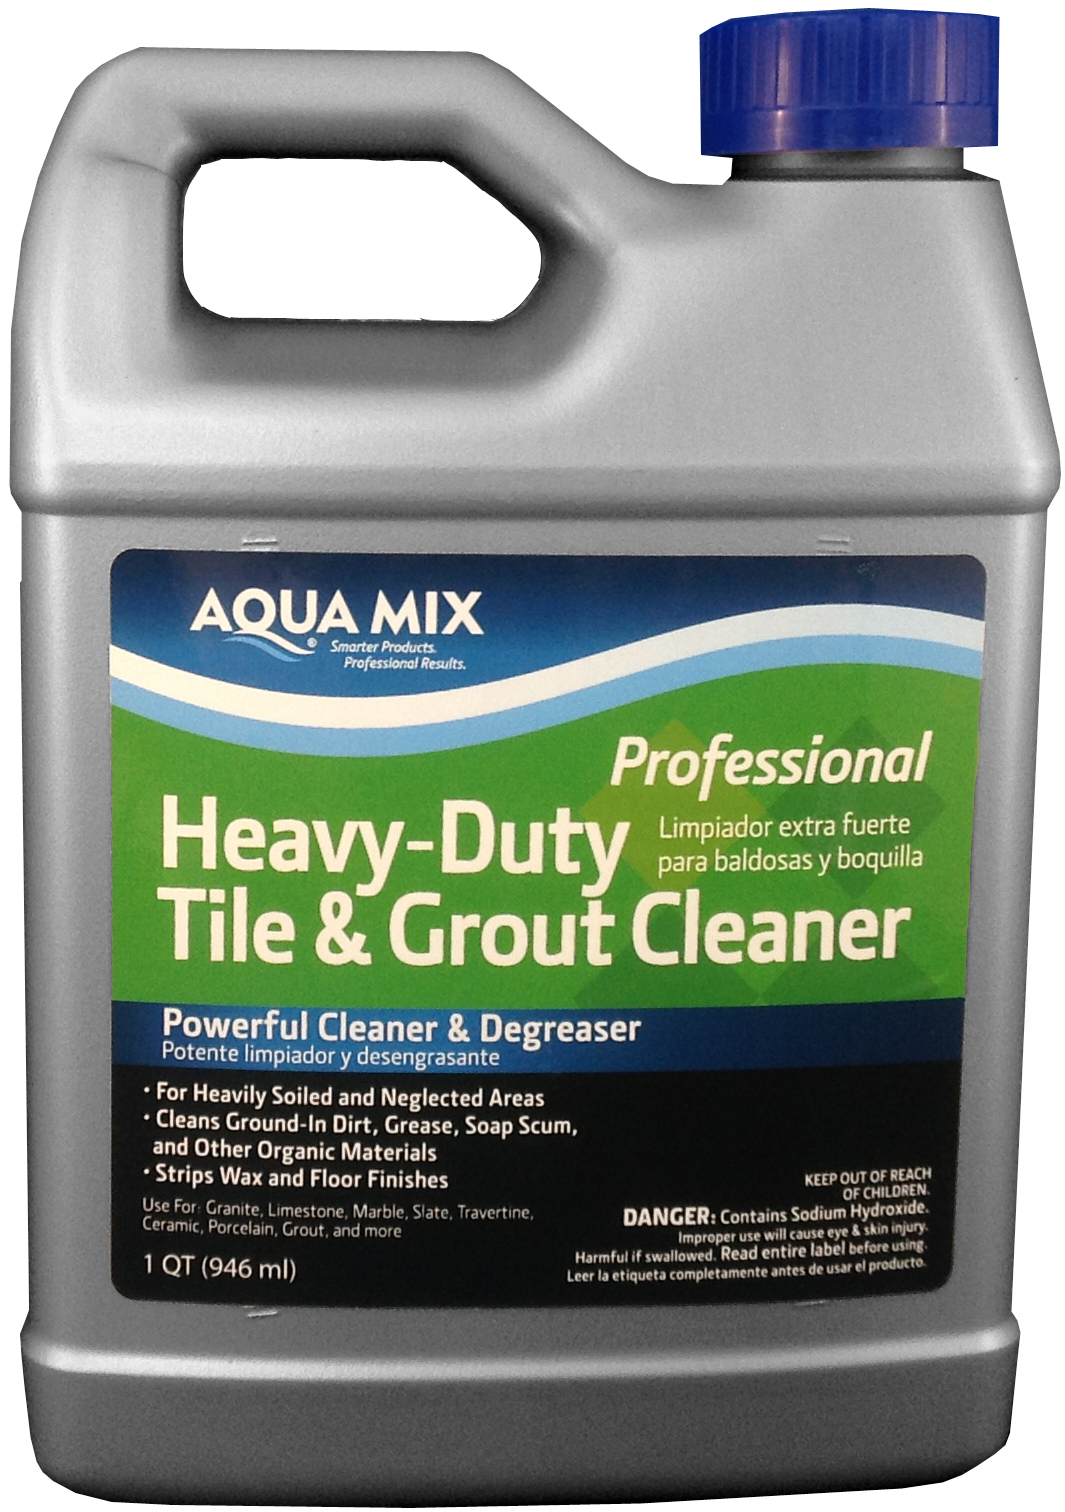 Aqua mix heavy duty tile and grout cleaner quart ebay for Alkaline concrete cleaner